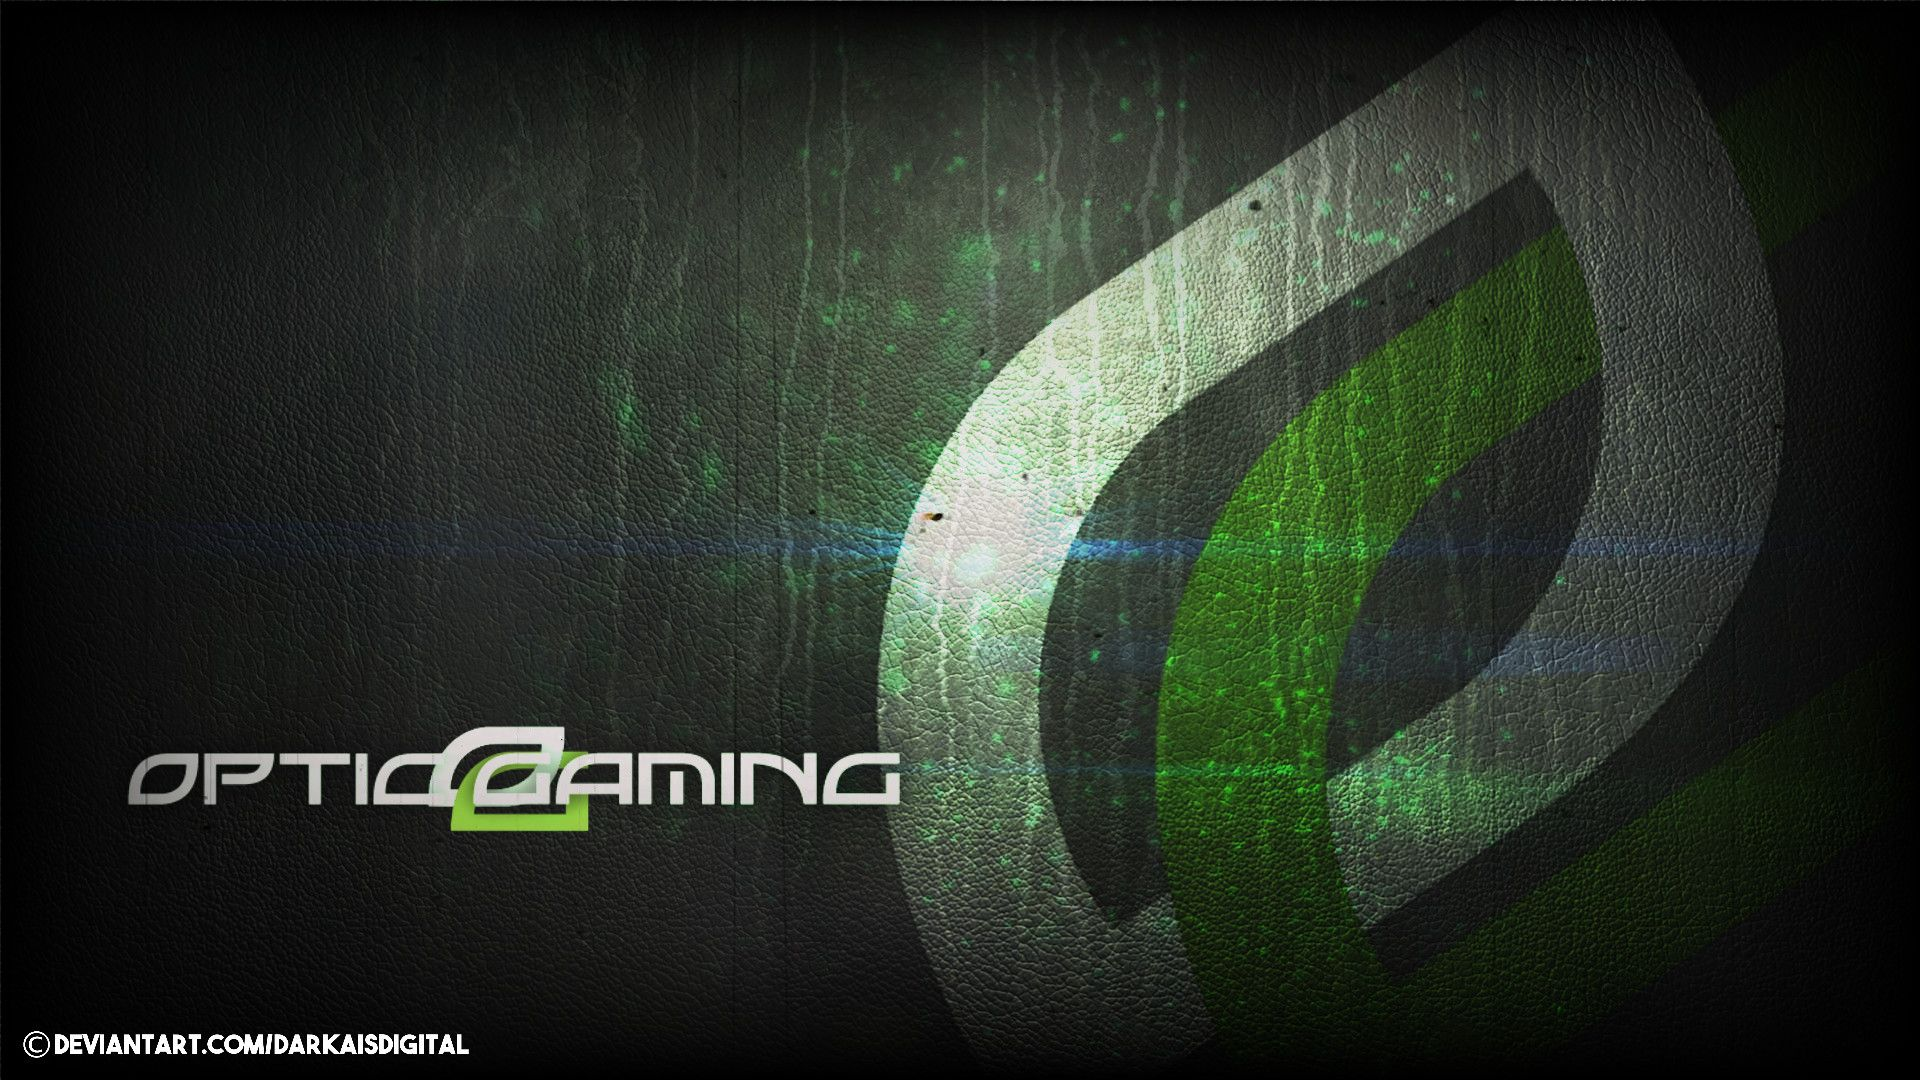 Optic Gaming wallpaper photo hd